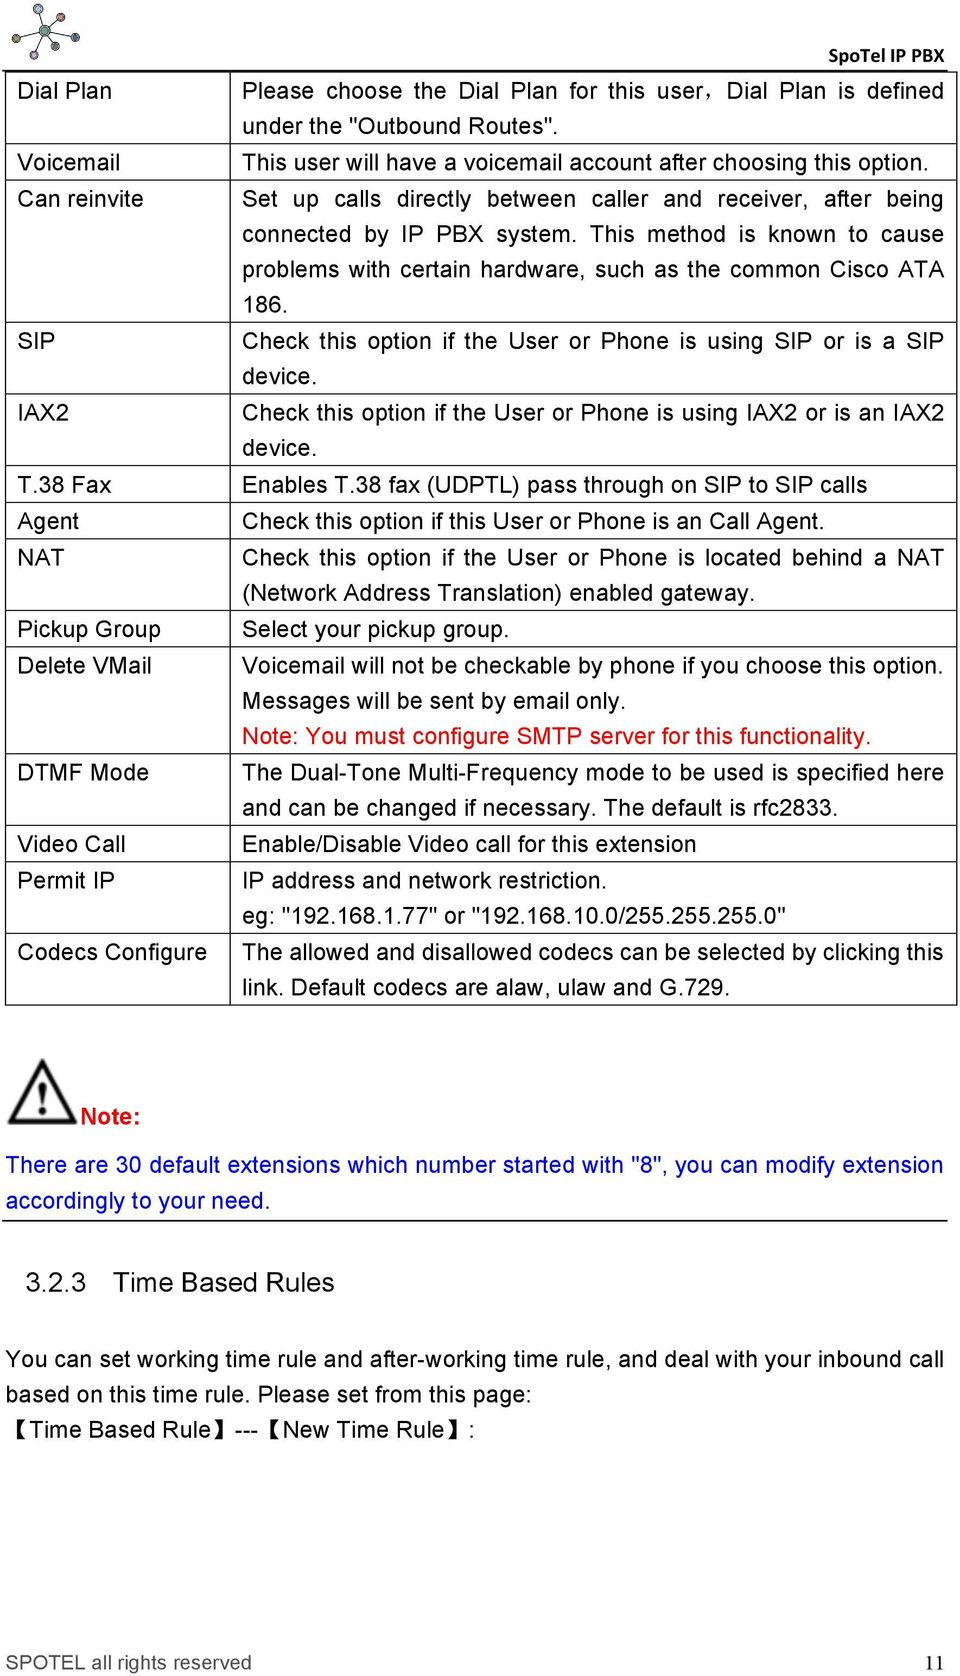 SIP Check this option if the User or Phone is using SIP or is a SIP device. IAX2 Check this option if the User or Phone is using IAX2 or is an IAX2 device. T.38 Fax Enables T.